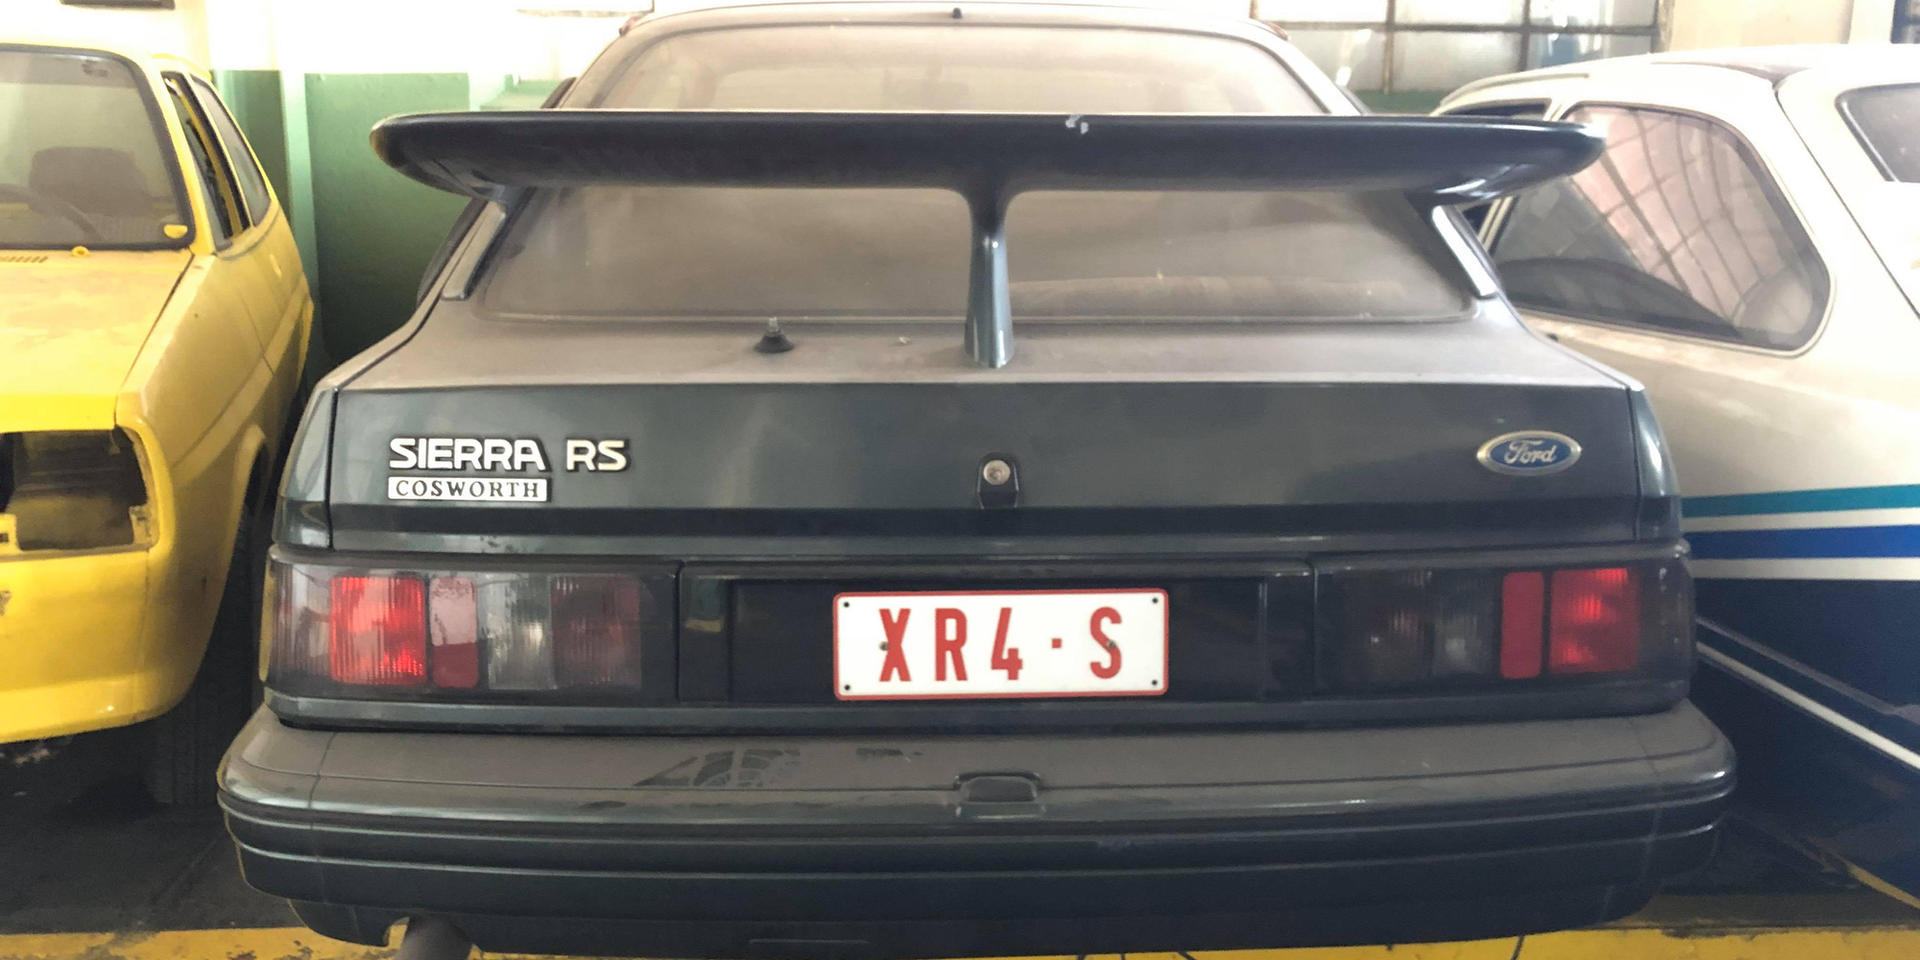 The XR4 RS